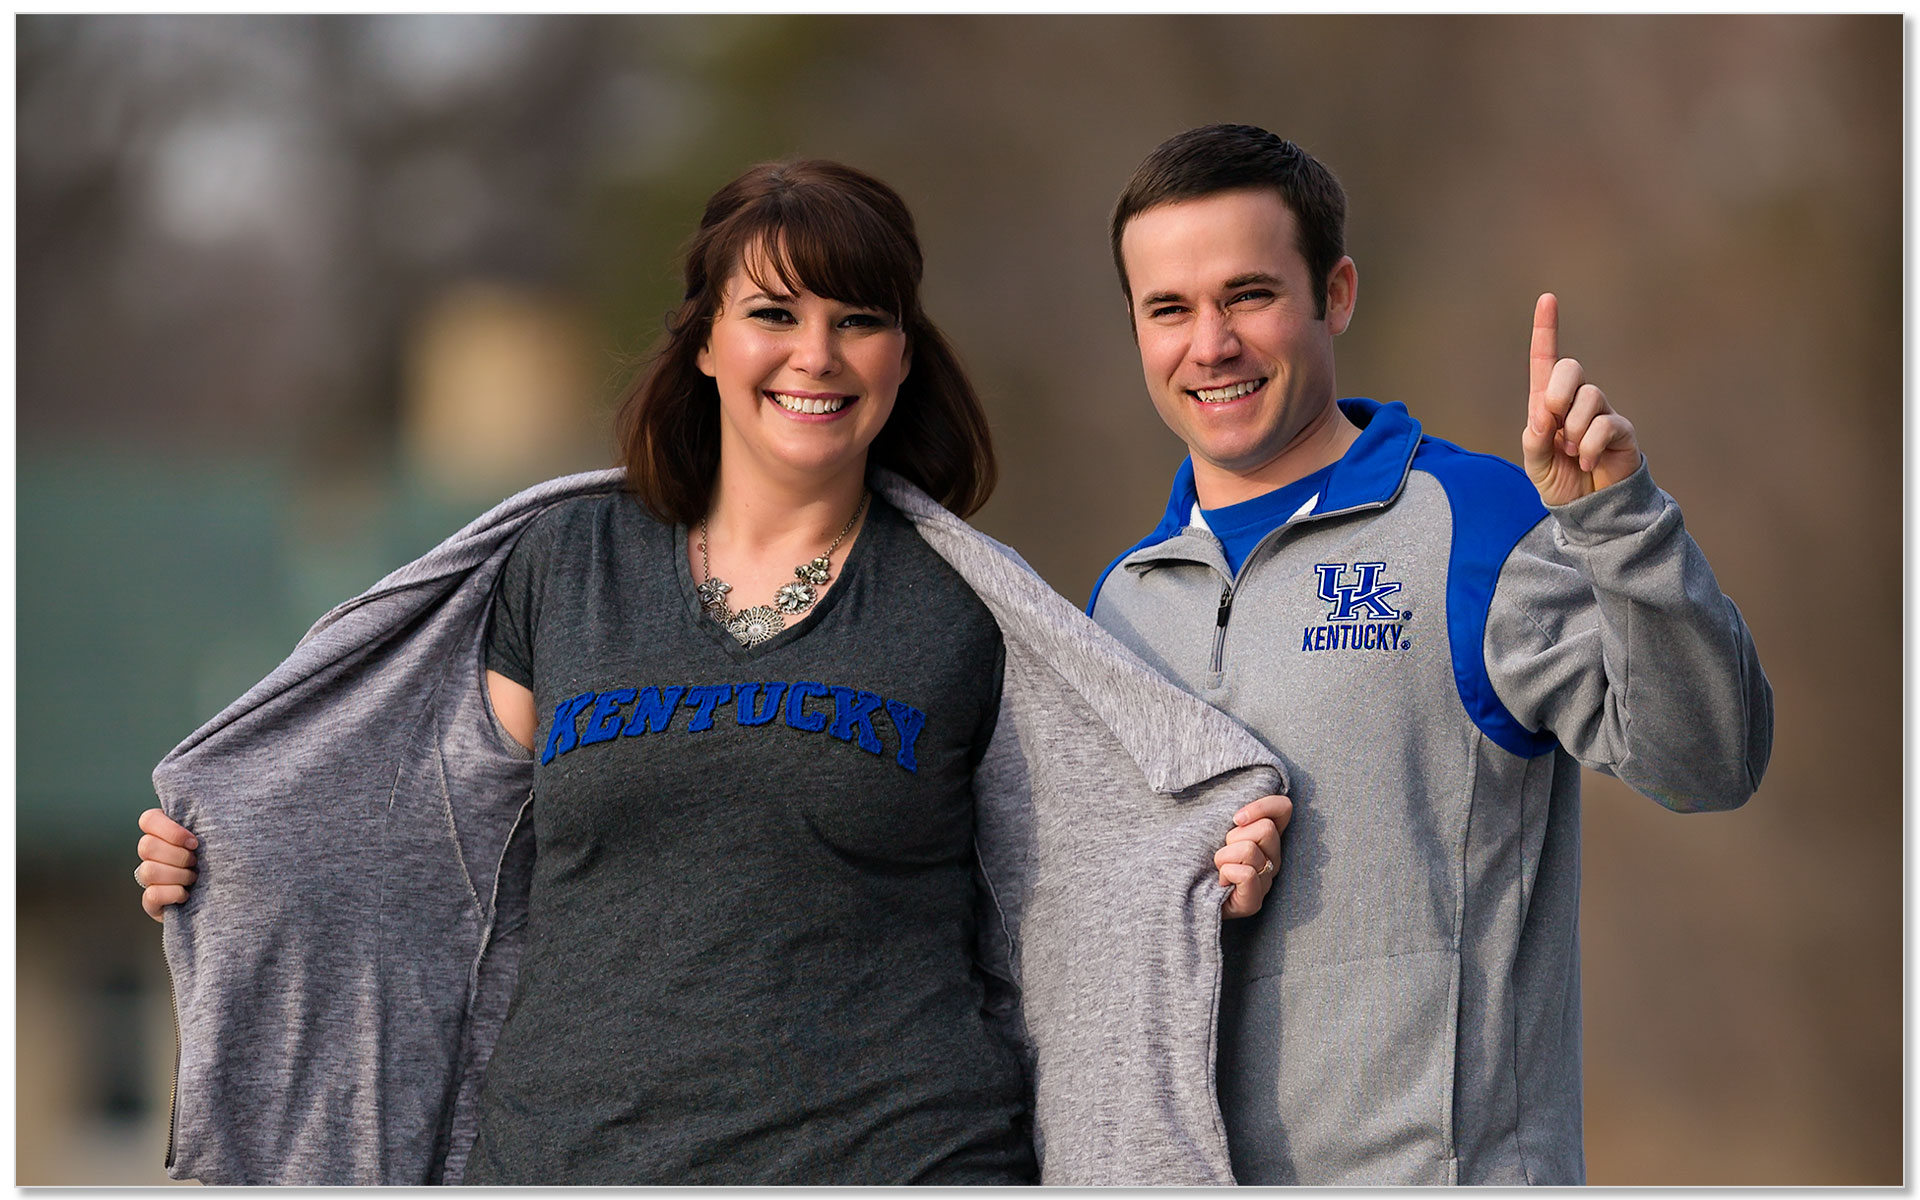 Kentucky Wildcats engagement photo